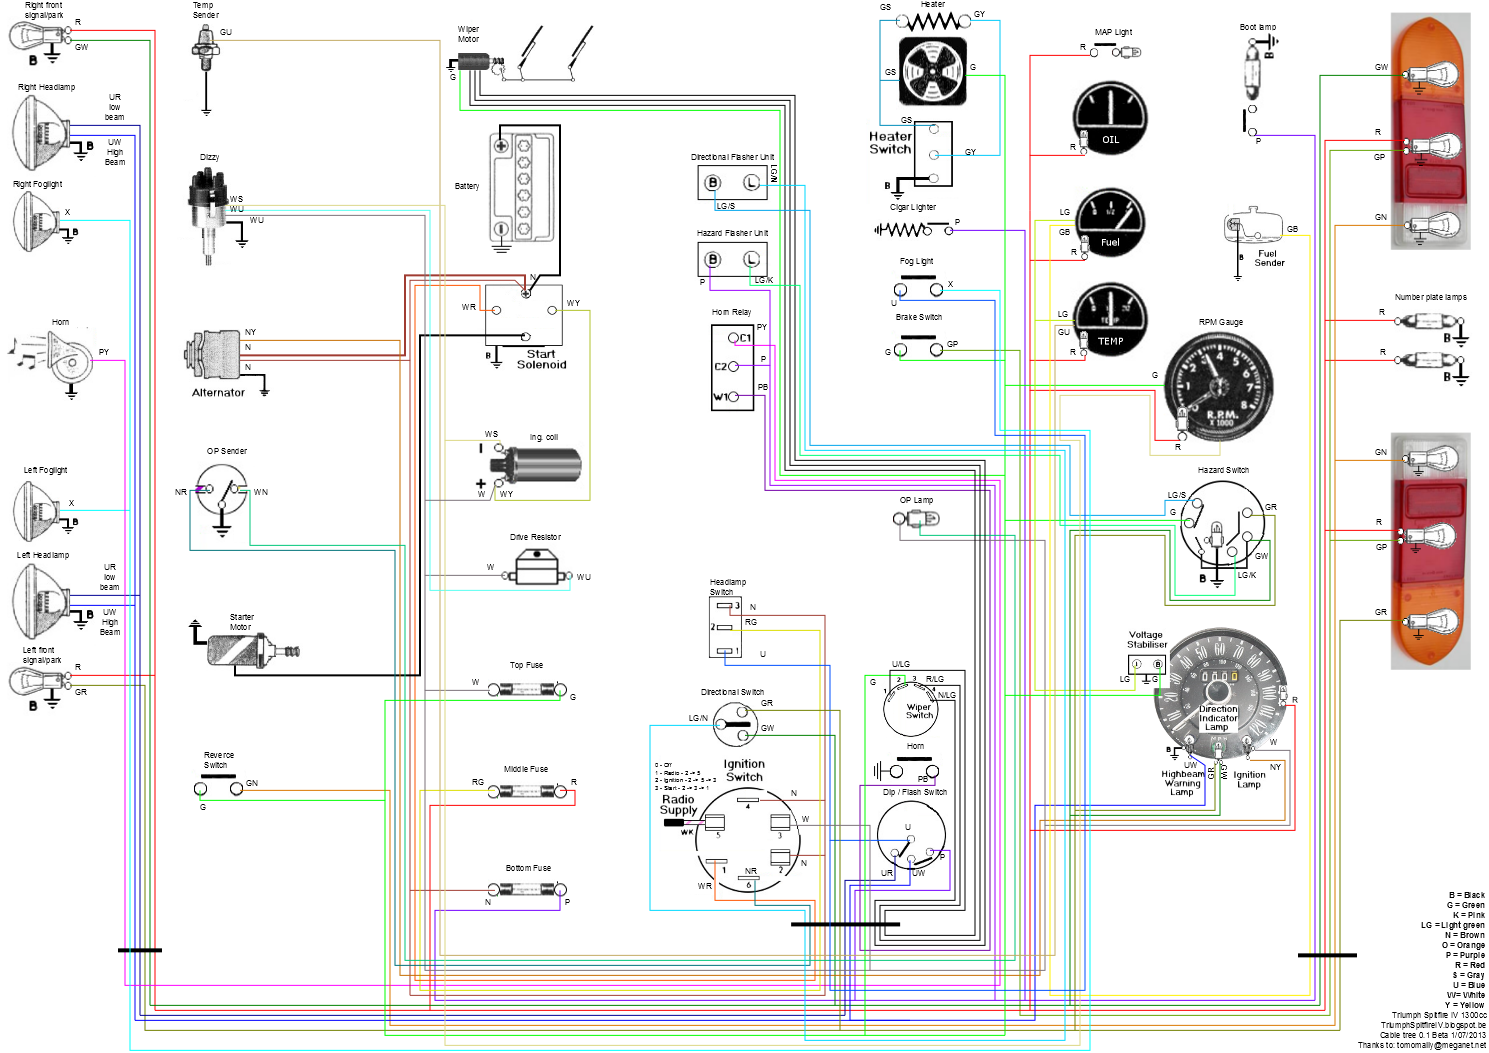 spitfire iv wiring diagram mk4 wiring diagram mk4 tdi wiring diagram \u2022 wiring diagrams j  at bakdesigns.co